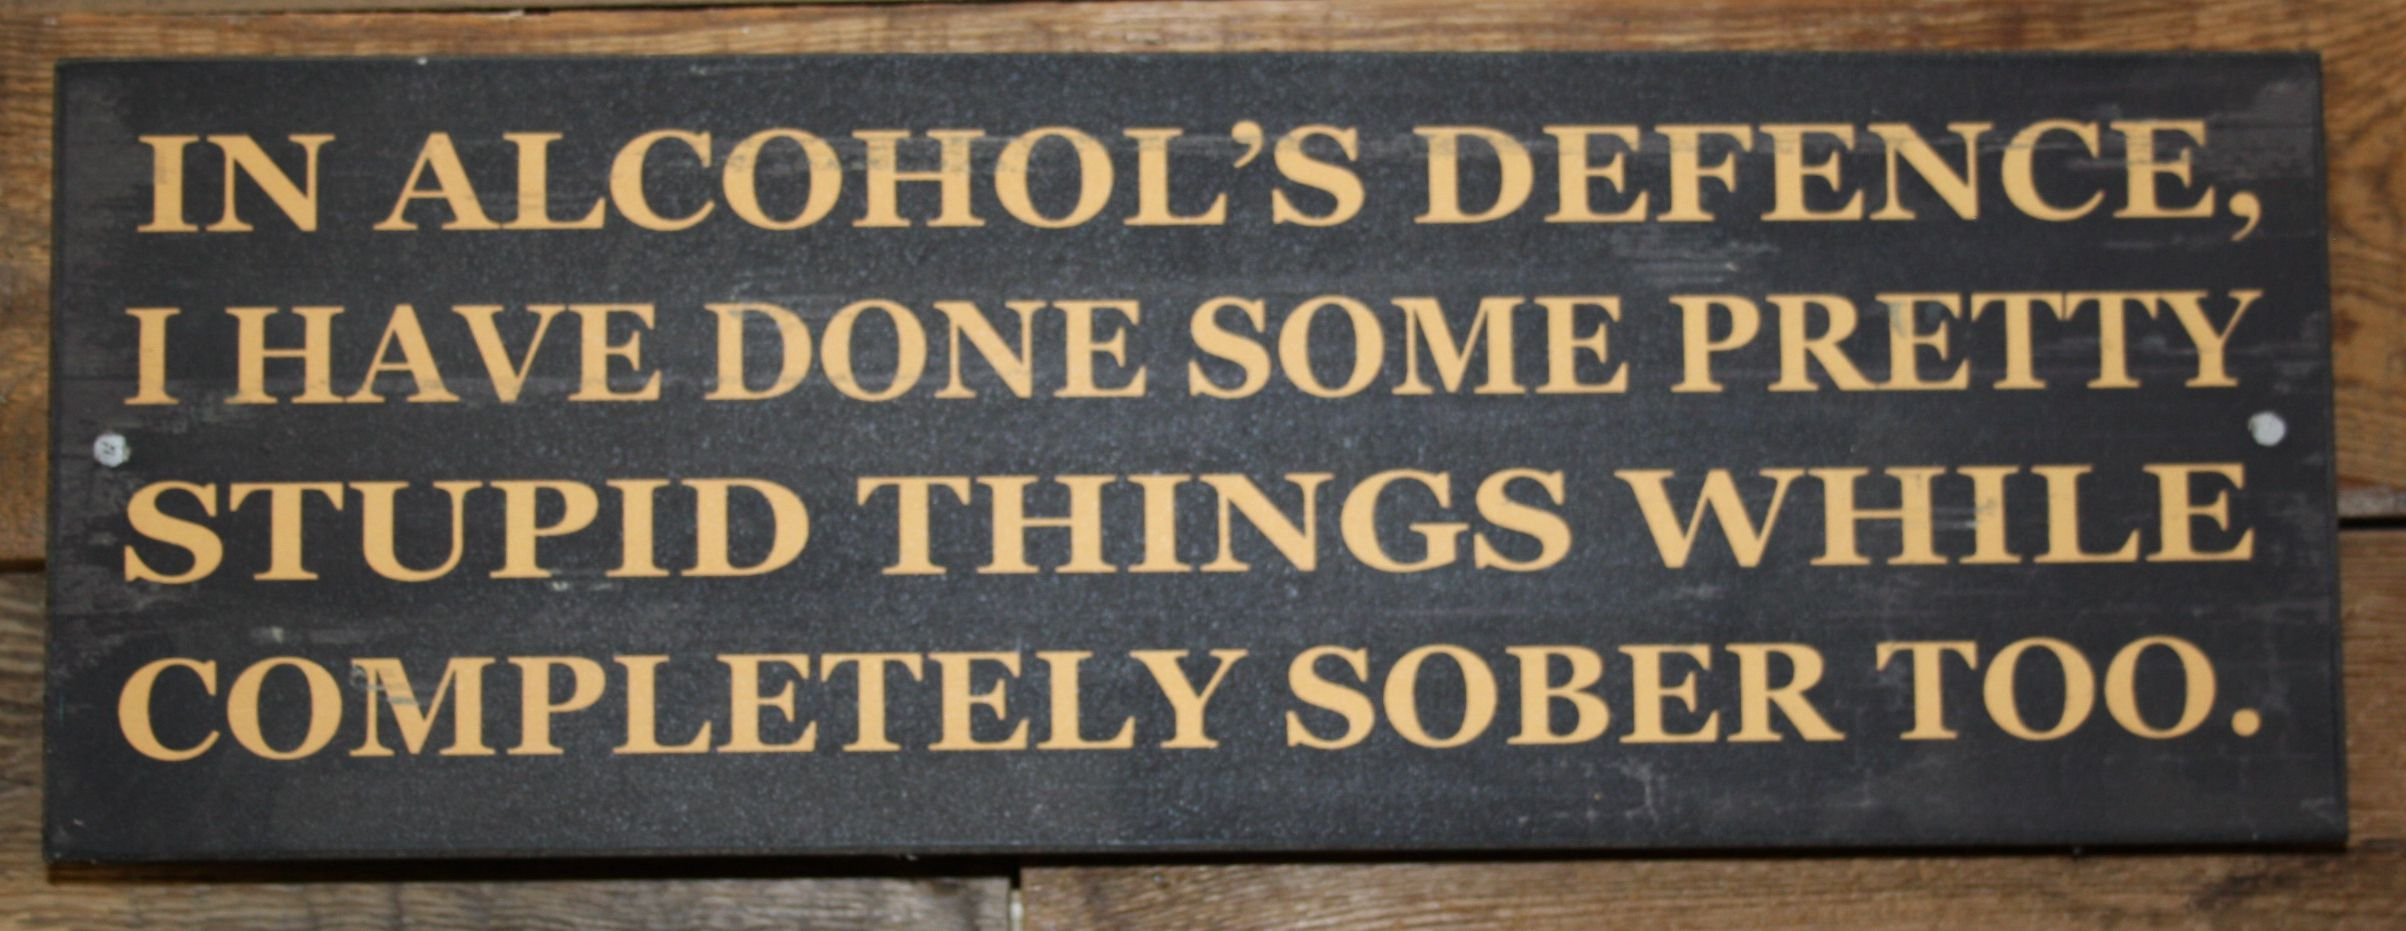 Pin by jean hoffhines on humorous signs wine signs